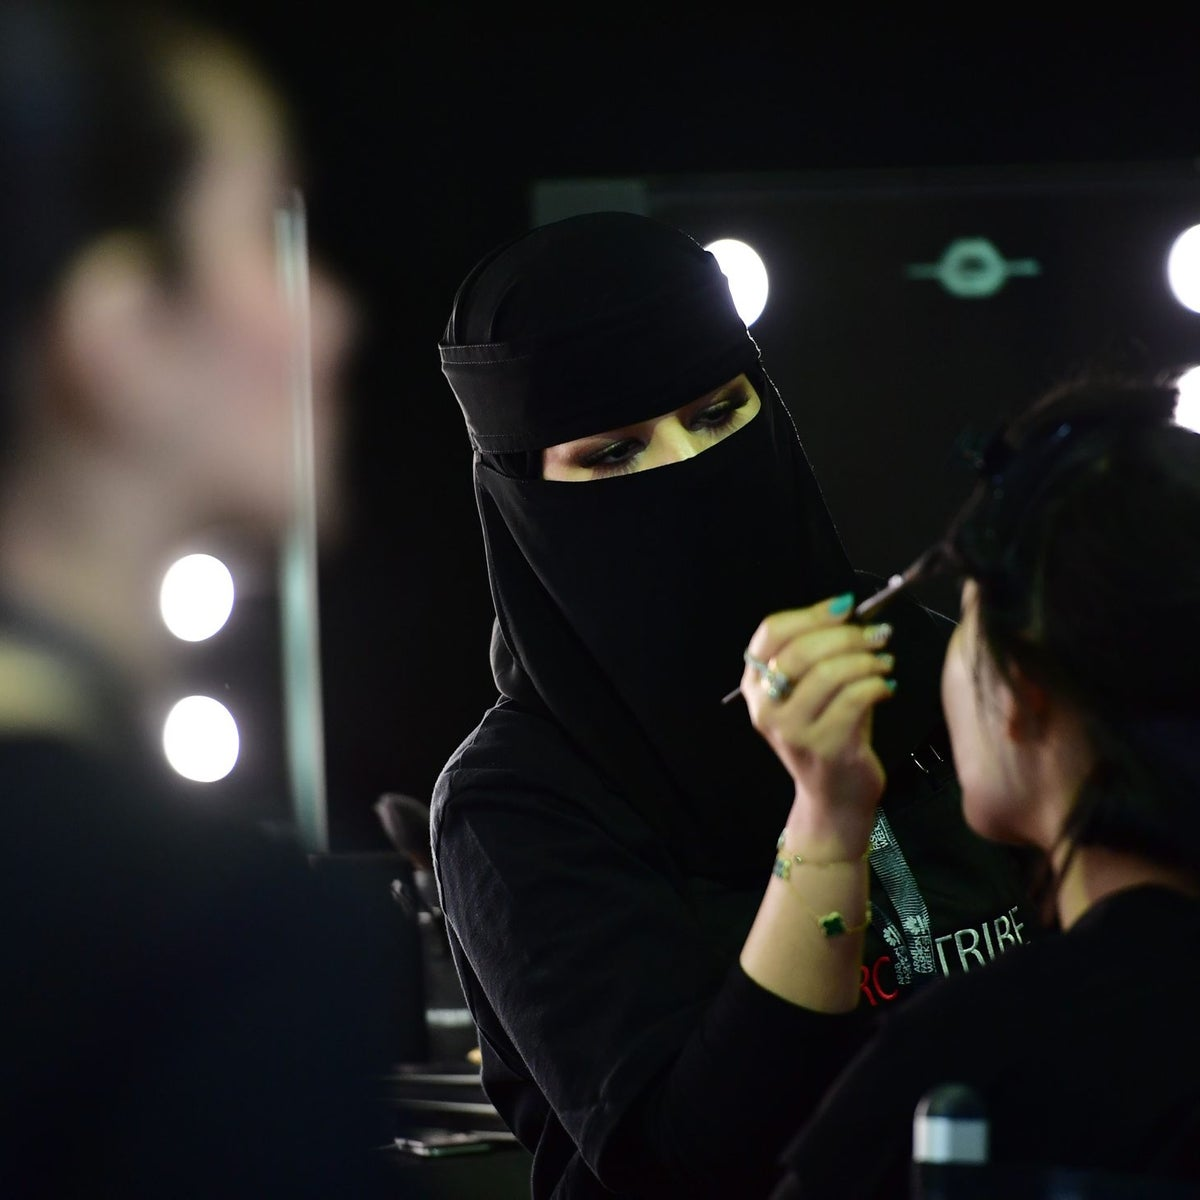 A Saudi makeup artist preps a model backstage during the first Arab Fashion Week in Riyadh on April 13, 2018. Arab Fashion Week is taking place at Riyadh's eco-friendly Apex Centre, a white honeycomb-like venue designed by the late celebrated Iraqi-British architect Zaha Hadid. / AFP PHOTO / GIUSEPPE CACACE